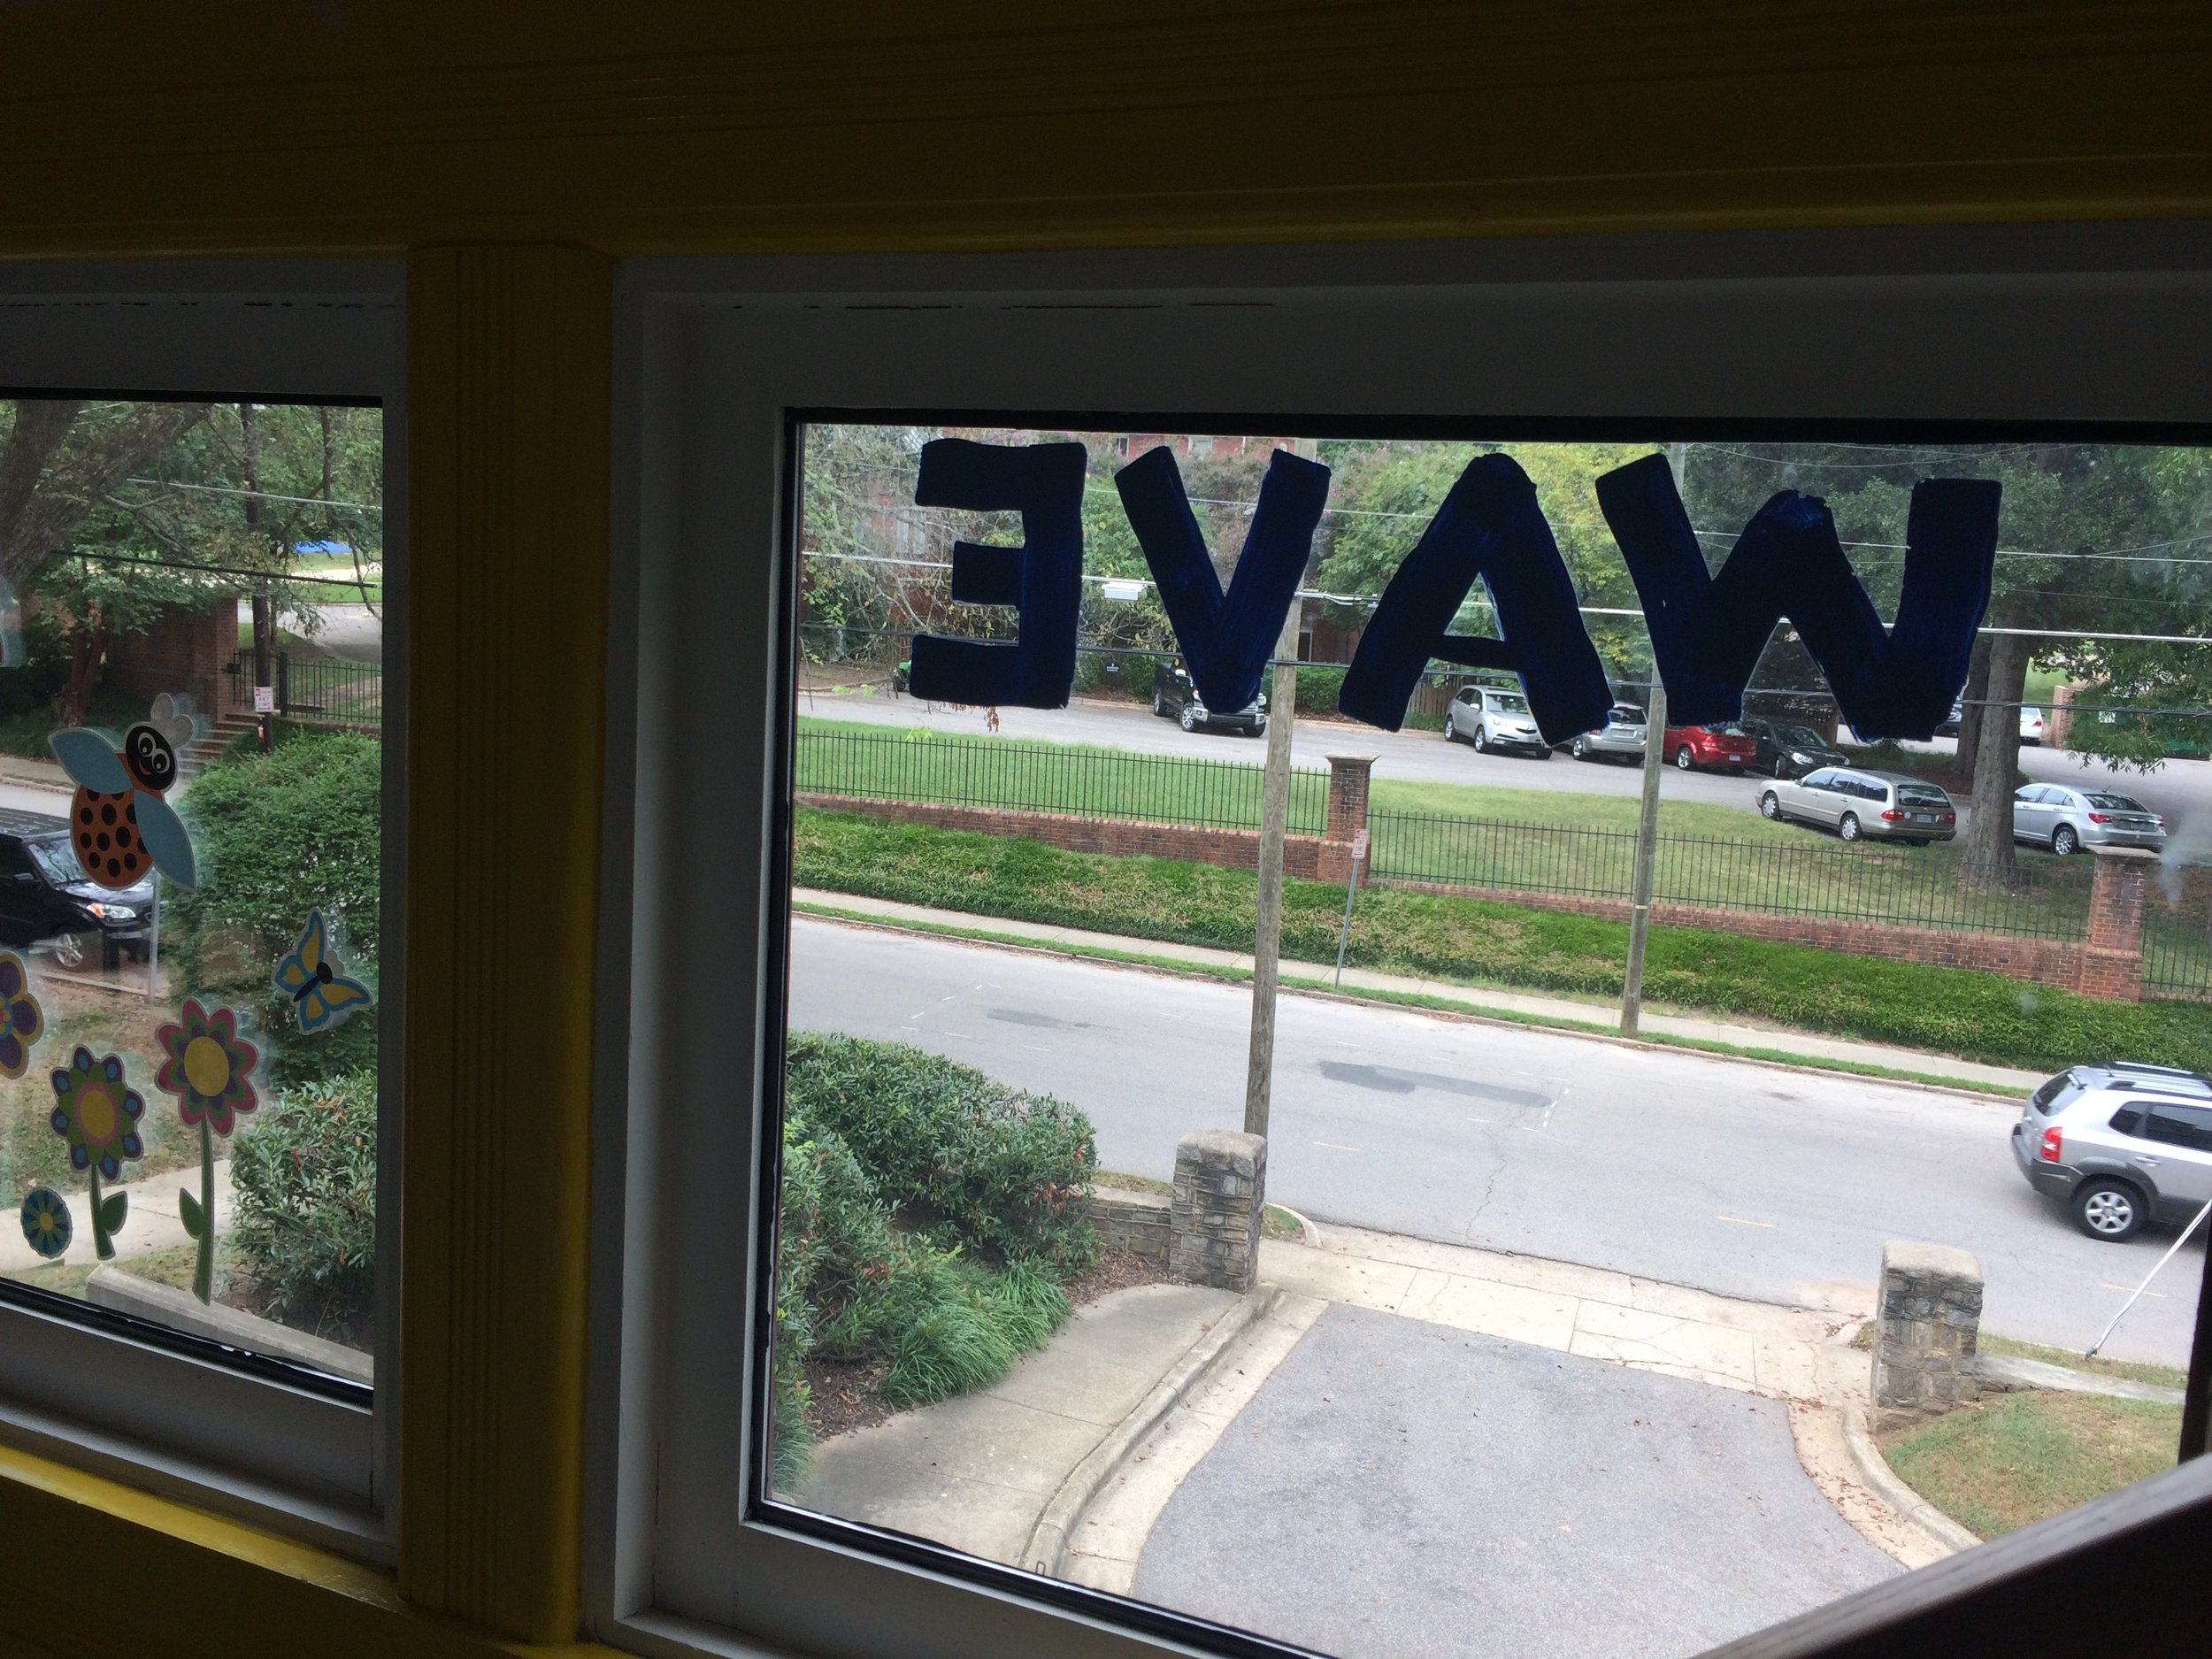 INDOOR VIEW OF THE WAVE WINDOW.